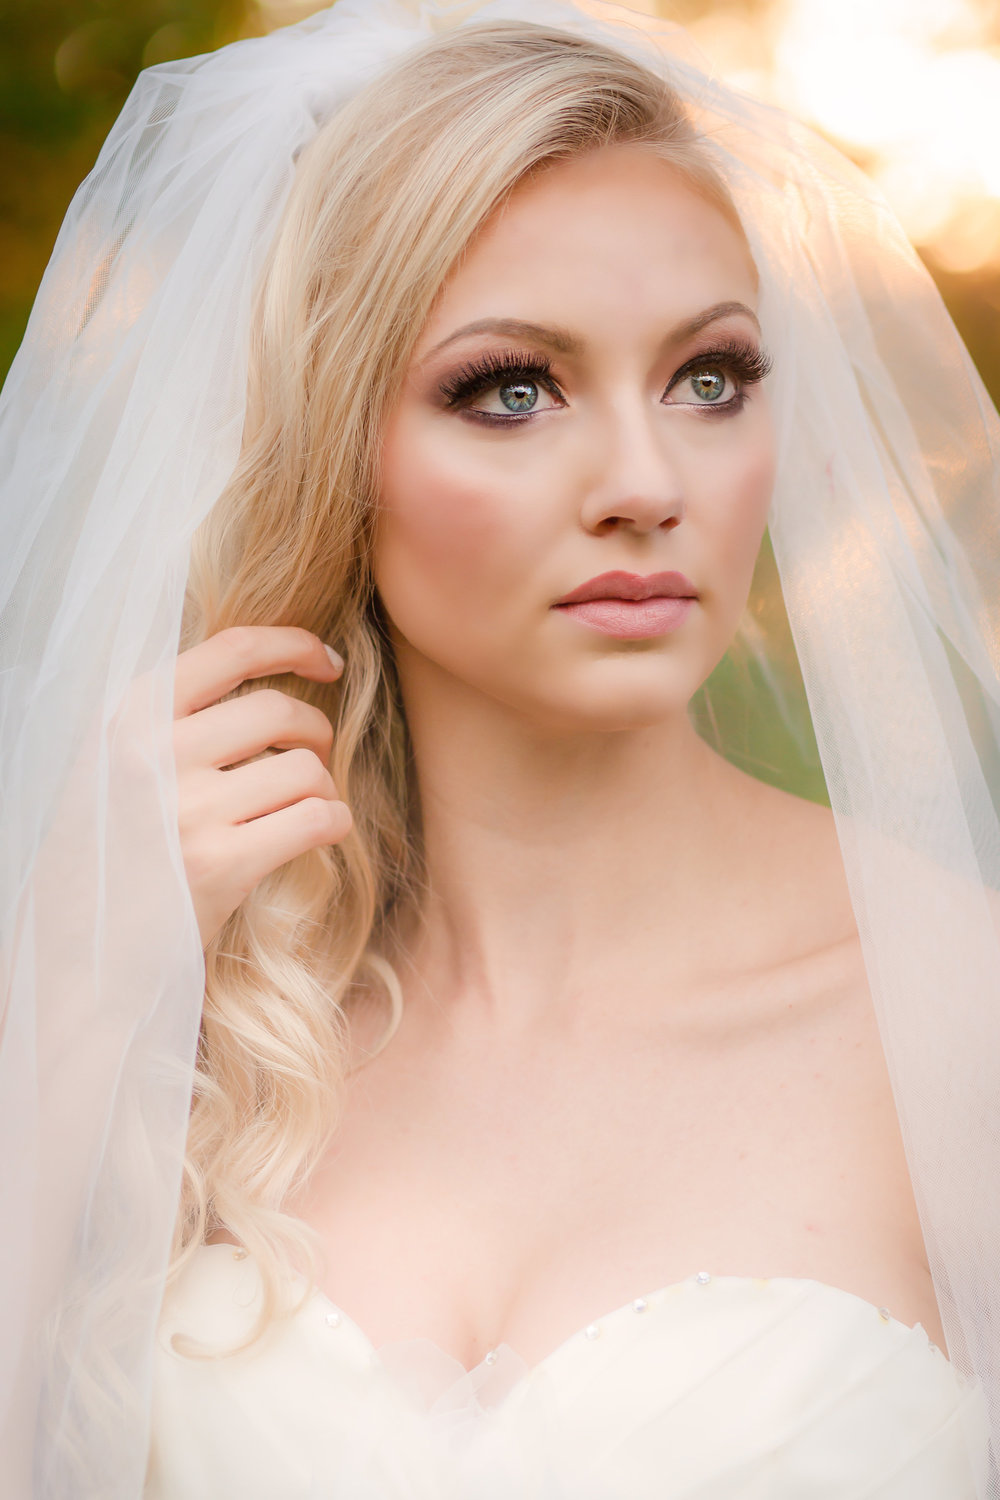 Beauty by Sacha Bride - Erin